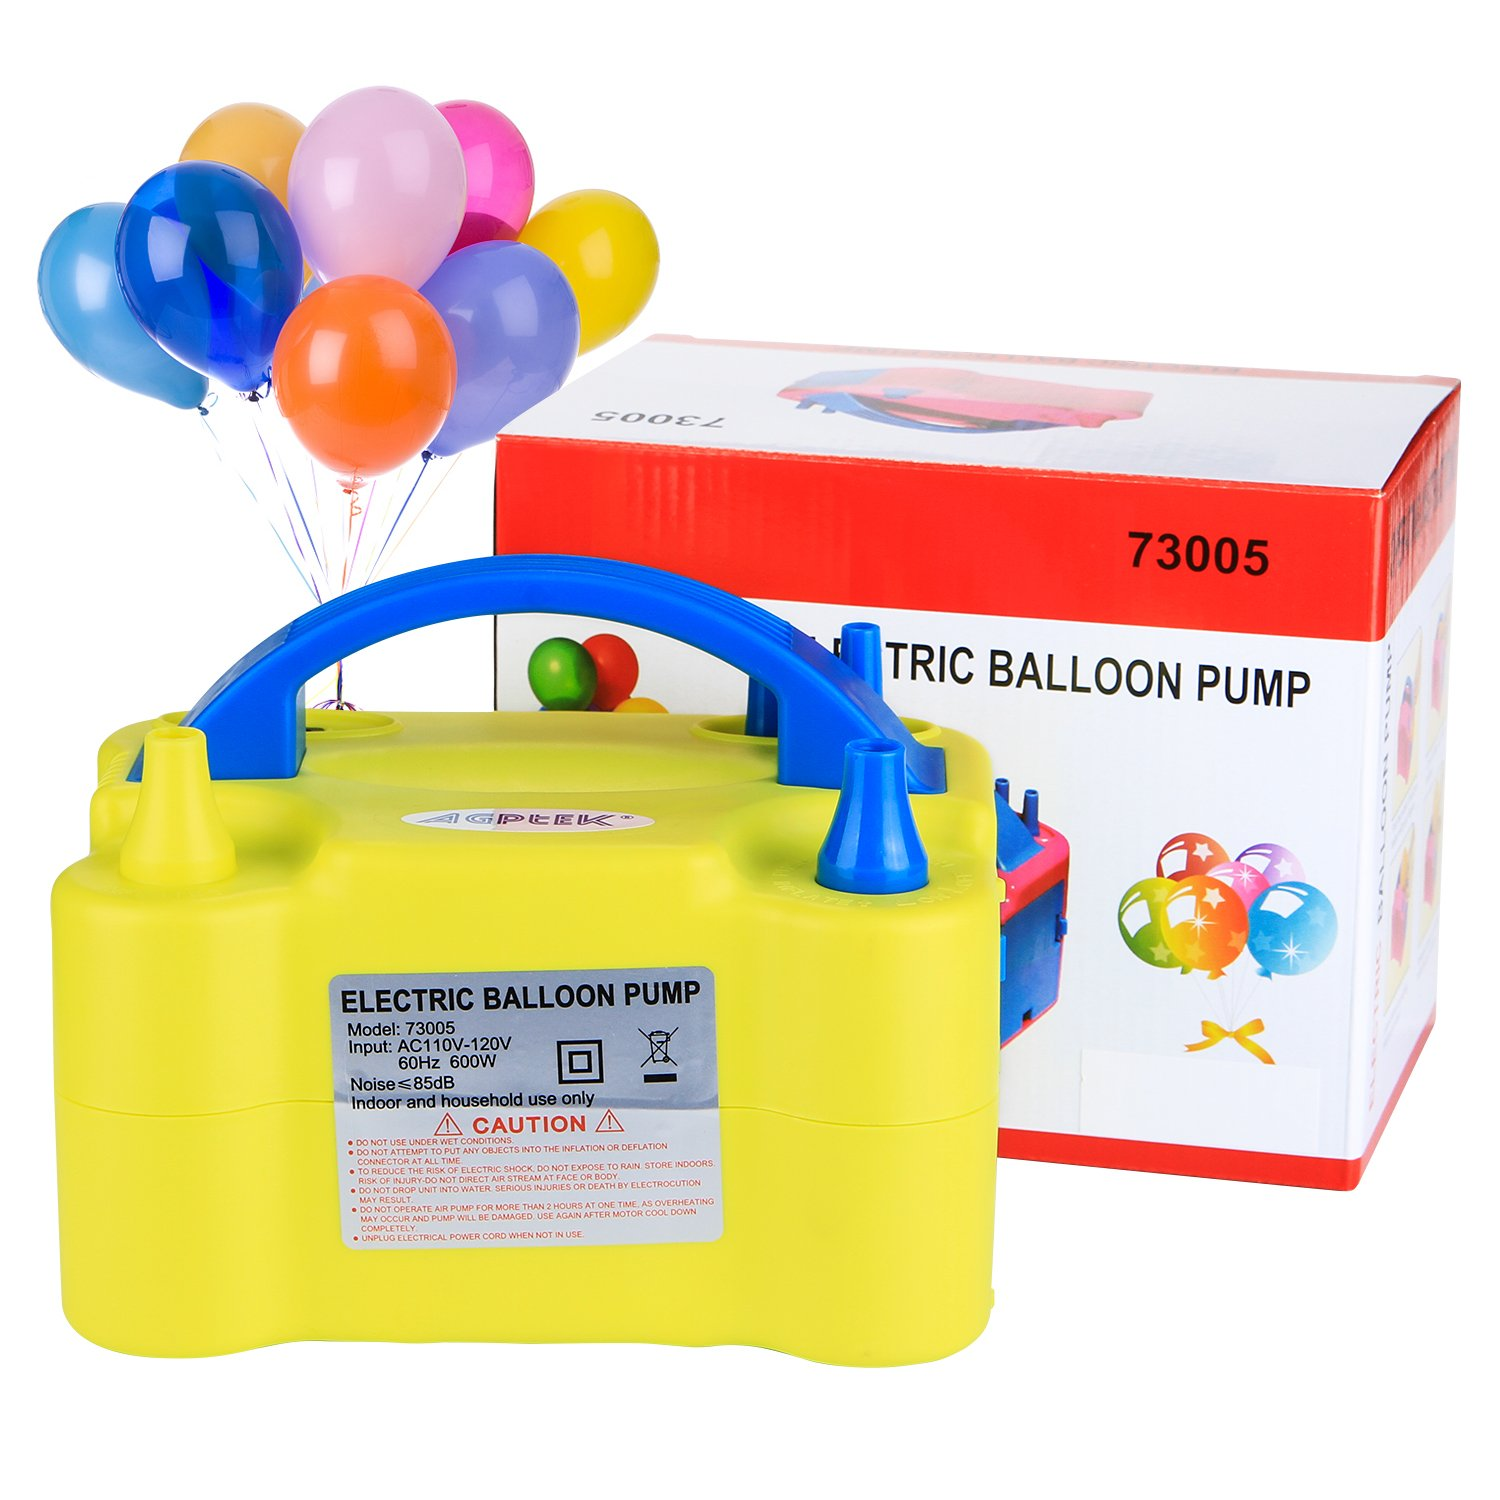 Electric Air Balloon Pump, AGPtEK Portable Dual Nozzle Inflator/Blower for Party Decoration - Yellow